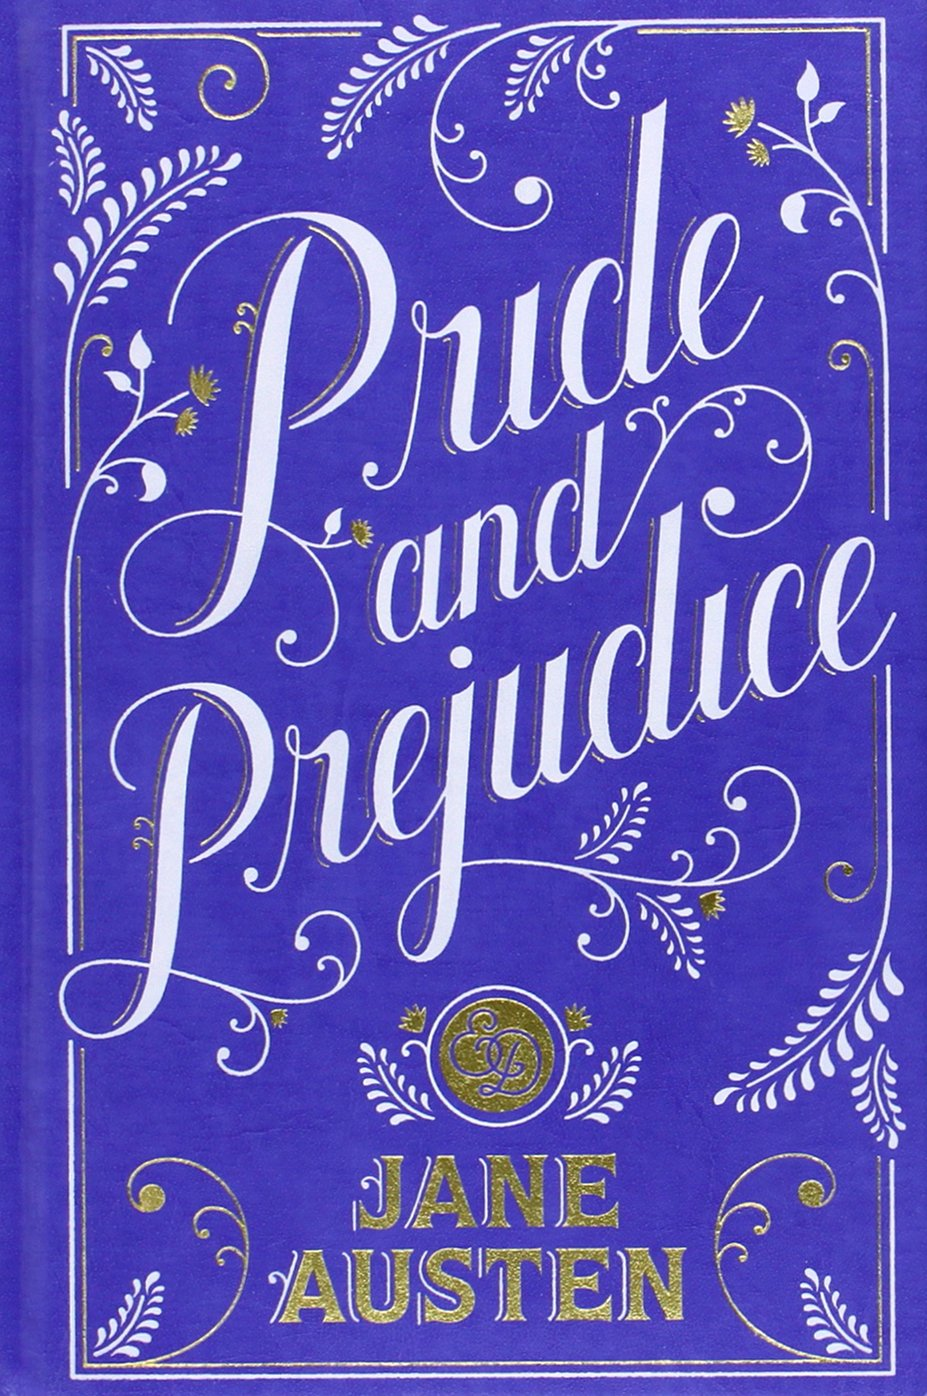 buy pride and prejudice barnes noble leatherbound classic buy pride and prejudice barnes noble leatherbound classic collection book online at low prices in pride and prejudice barnes noble